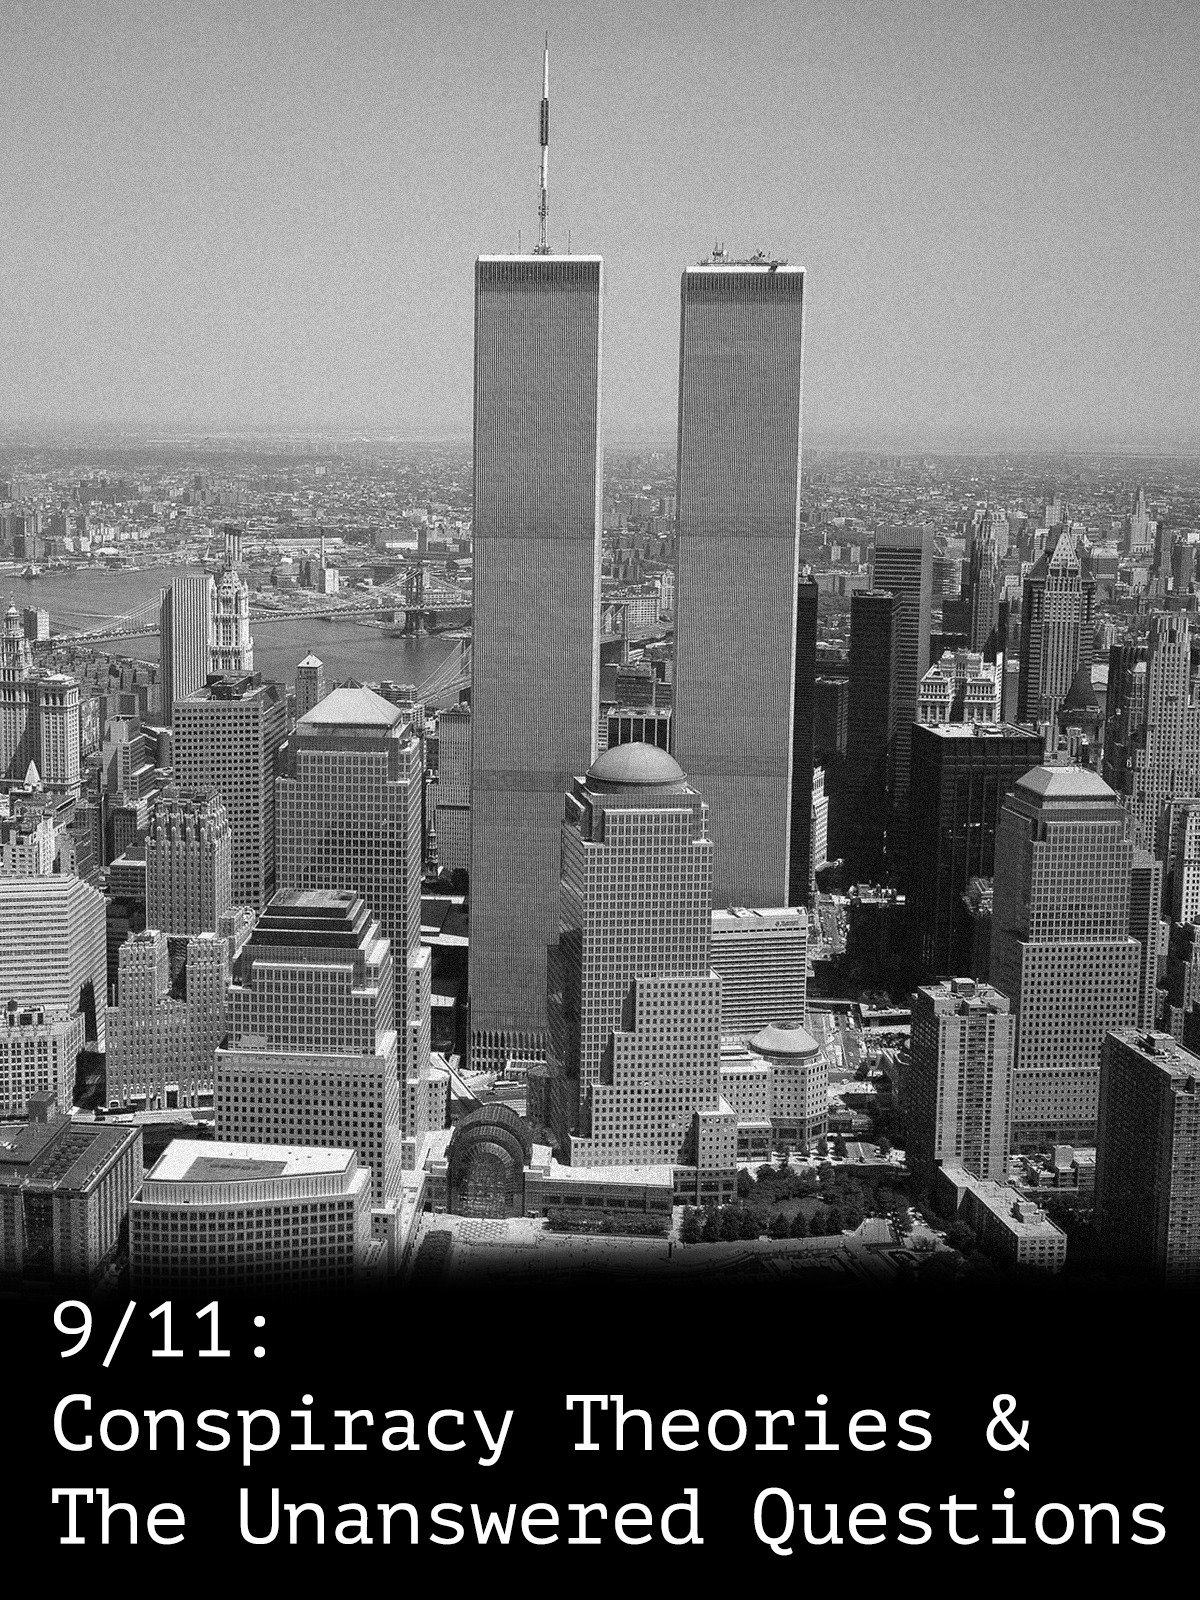 9/11: Conspiracy Theories & The Unanswered Questions